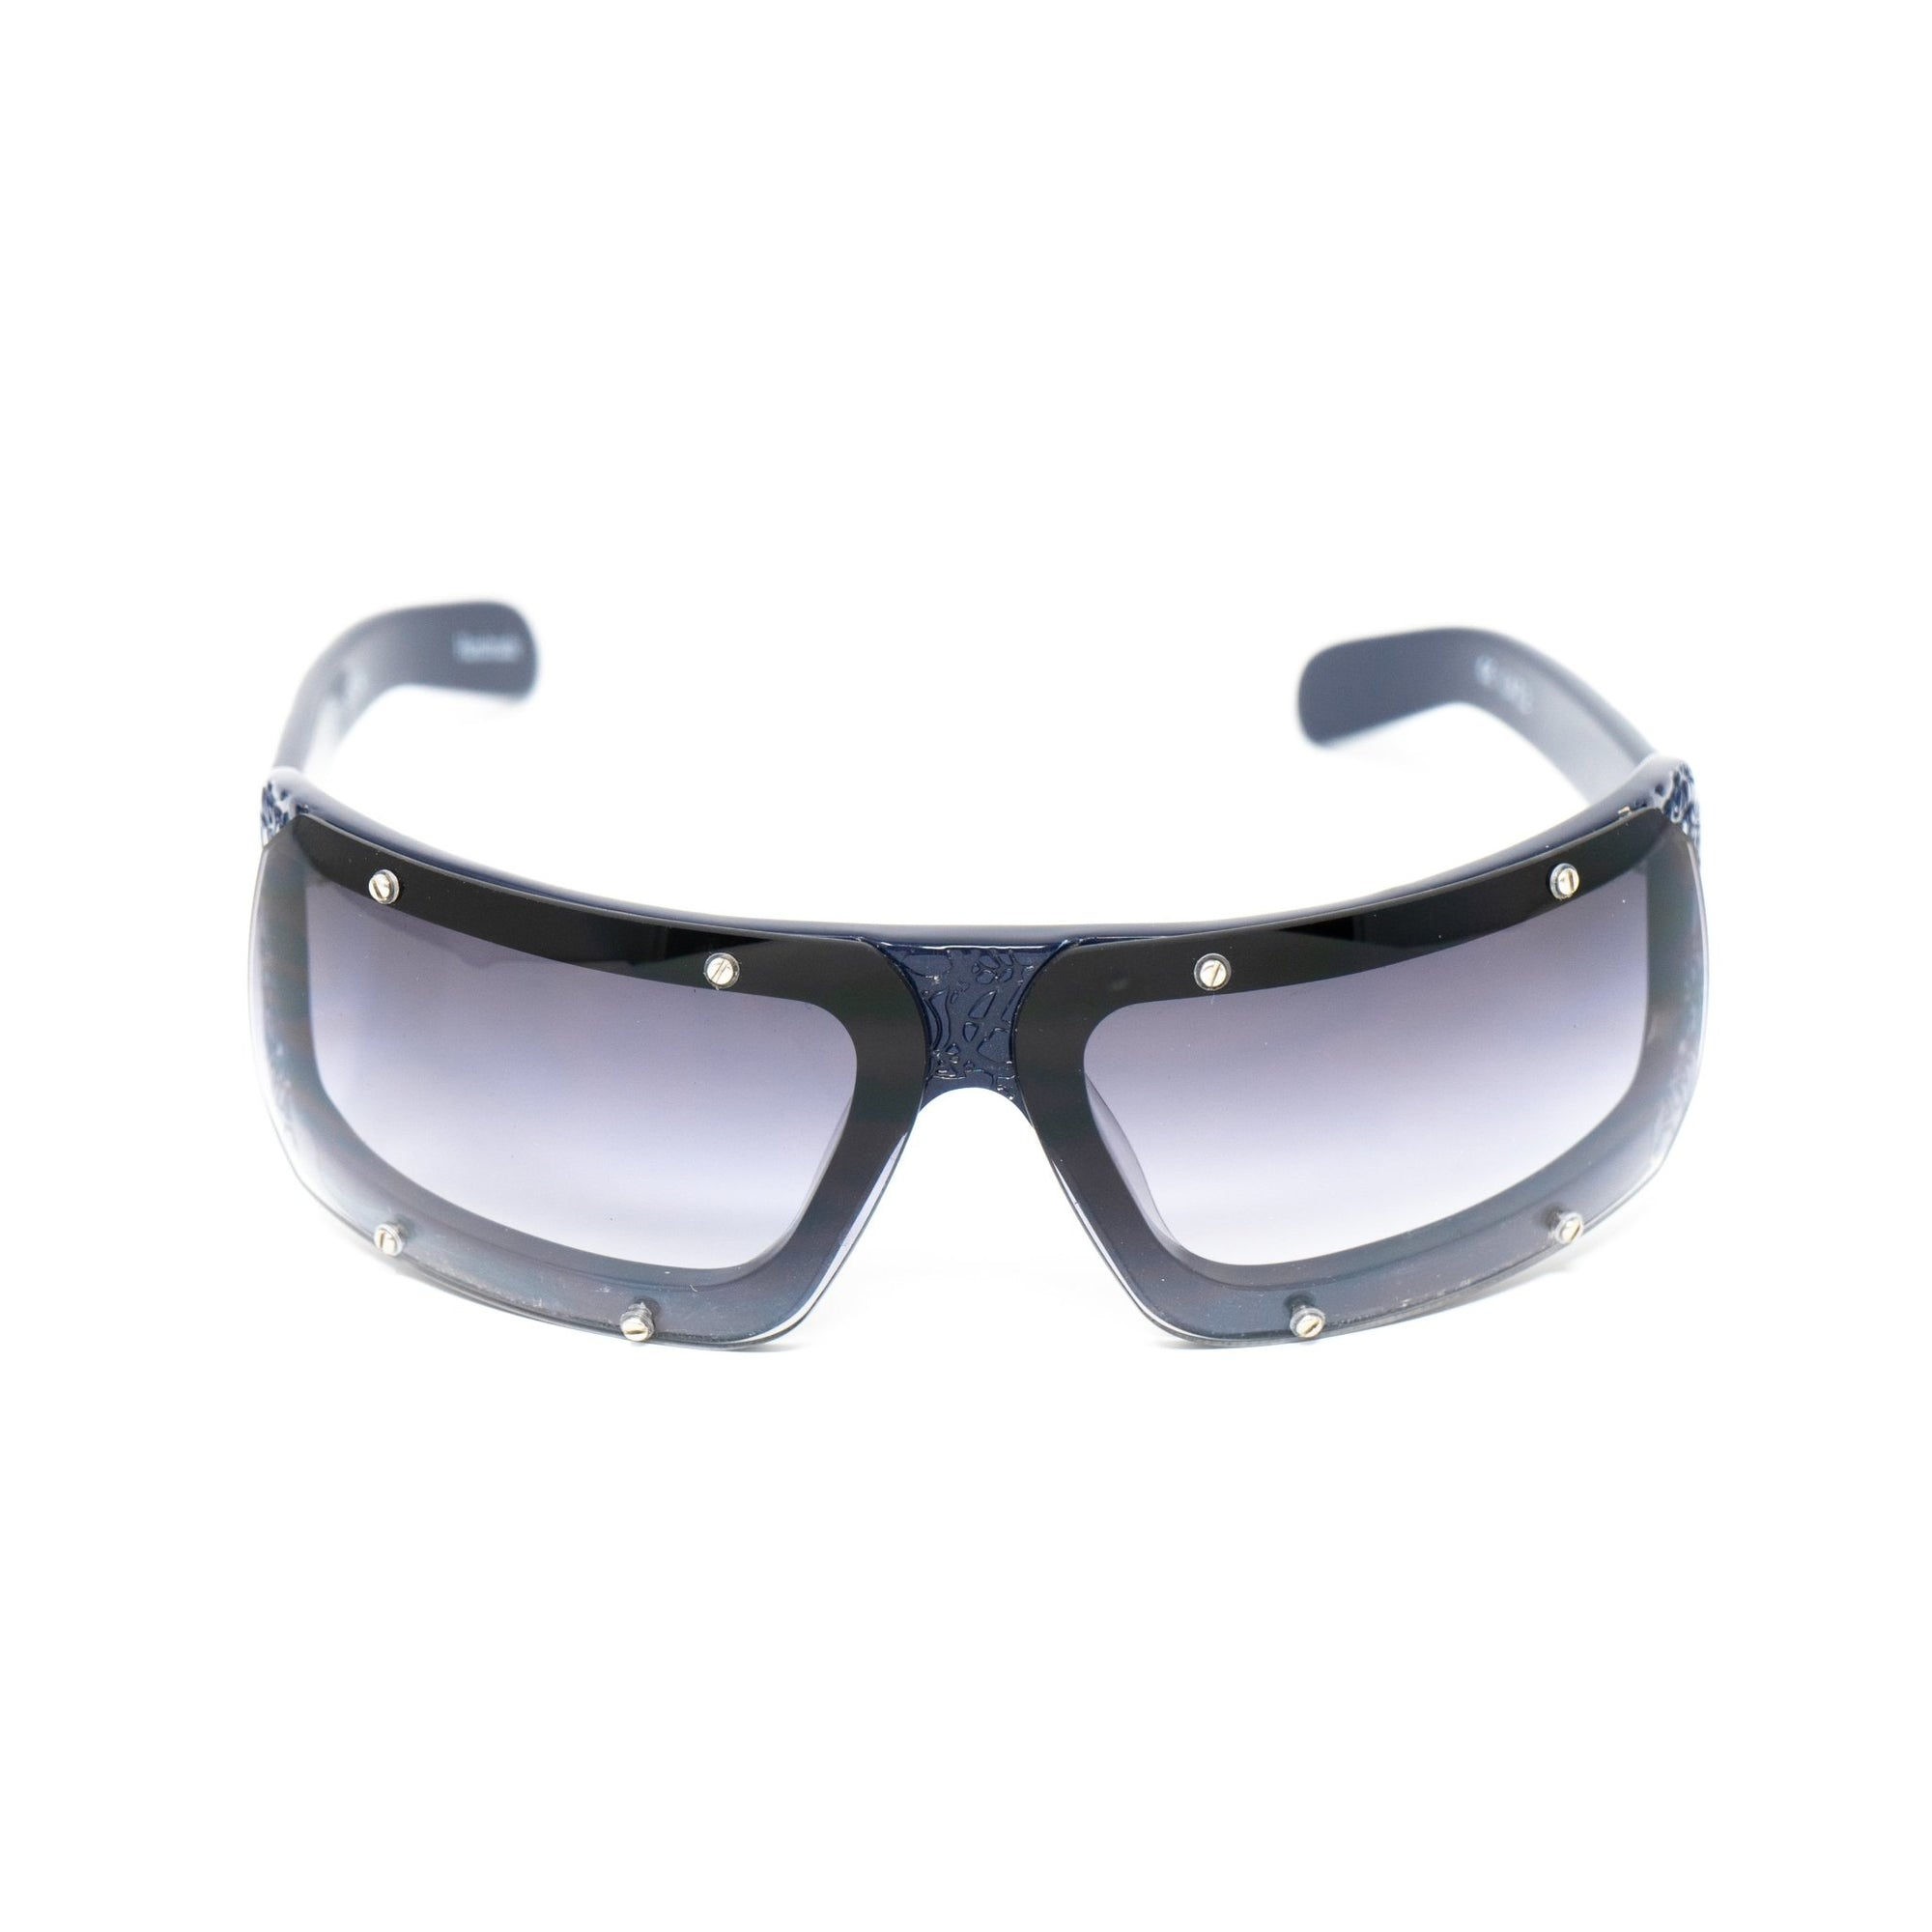 Buddhist Punk Sunglasses Rectangular Navy With Grey Graduated Lenses Category 2 6BP2C4NAVY - Watches & Crystals